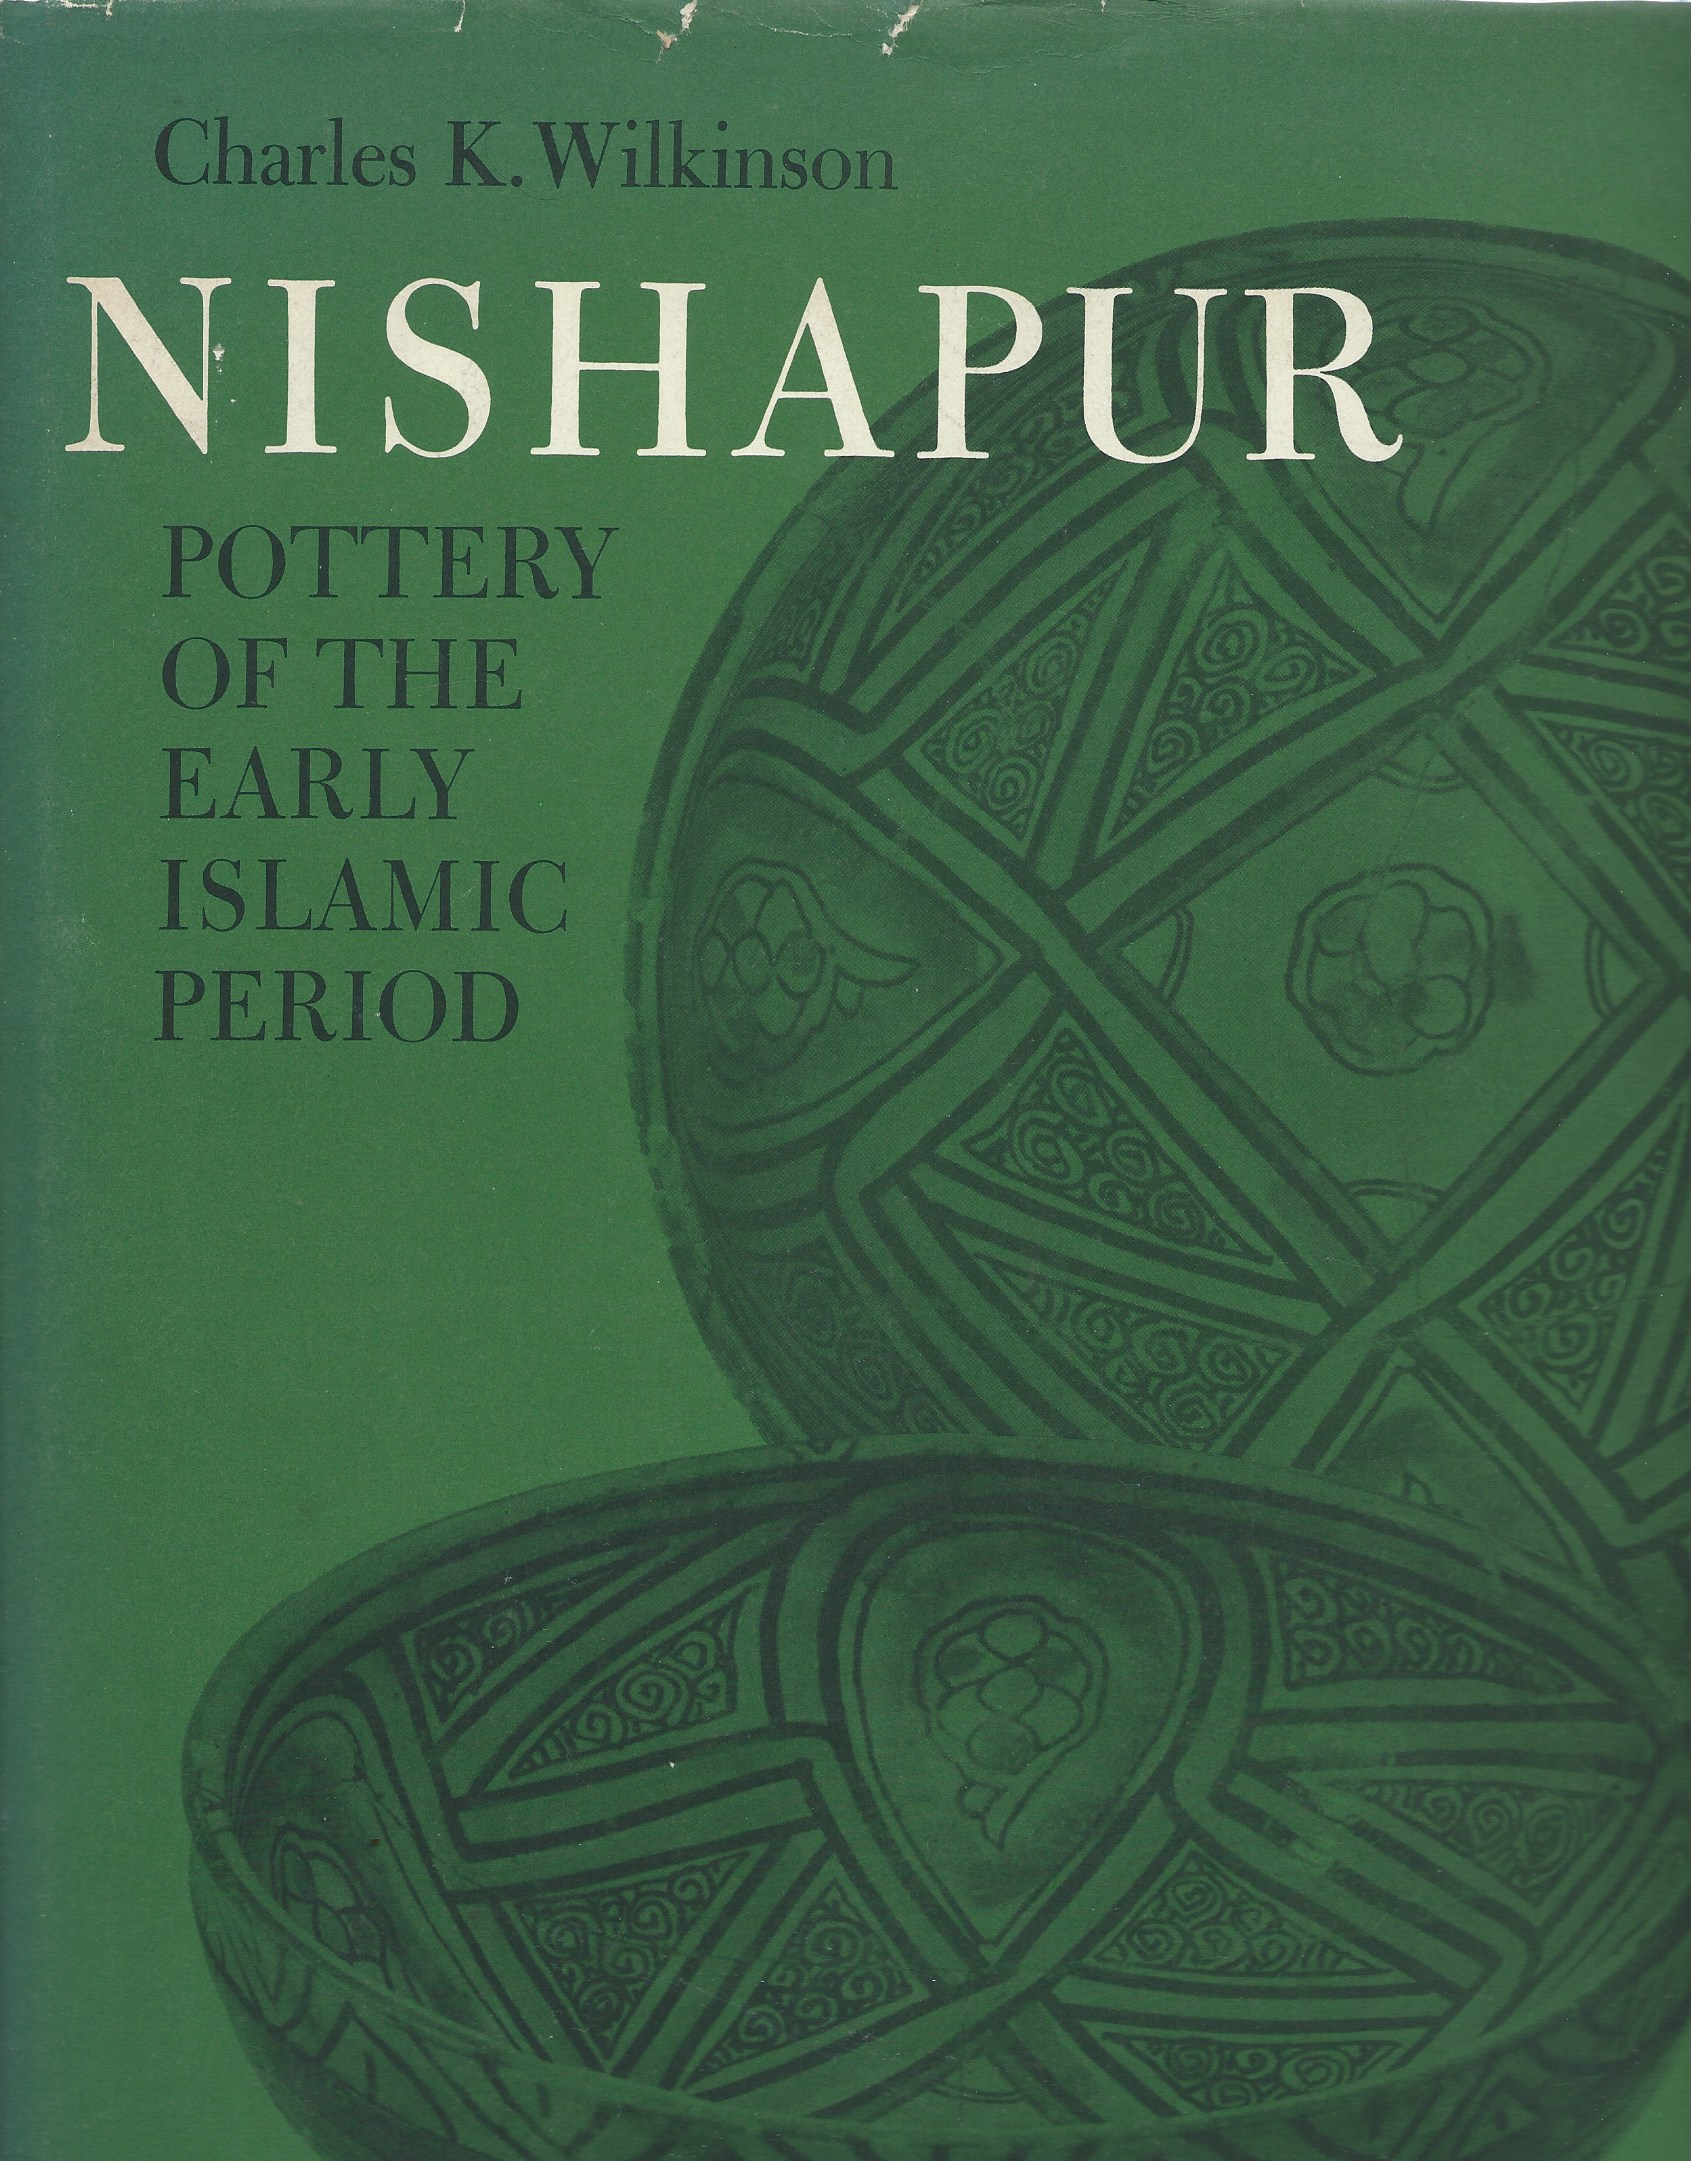 Image for Pottery of the Early Islamic Period; NISHAPUR